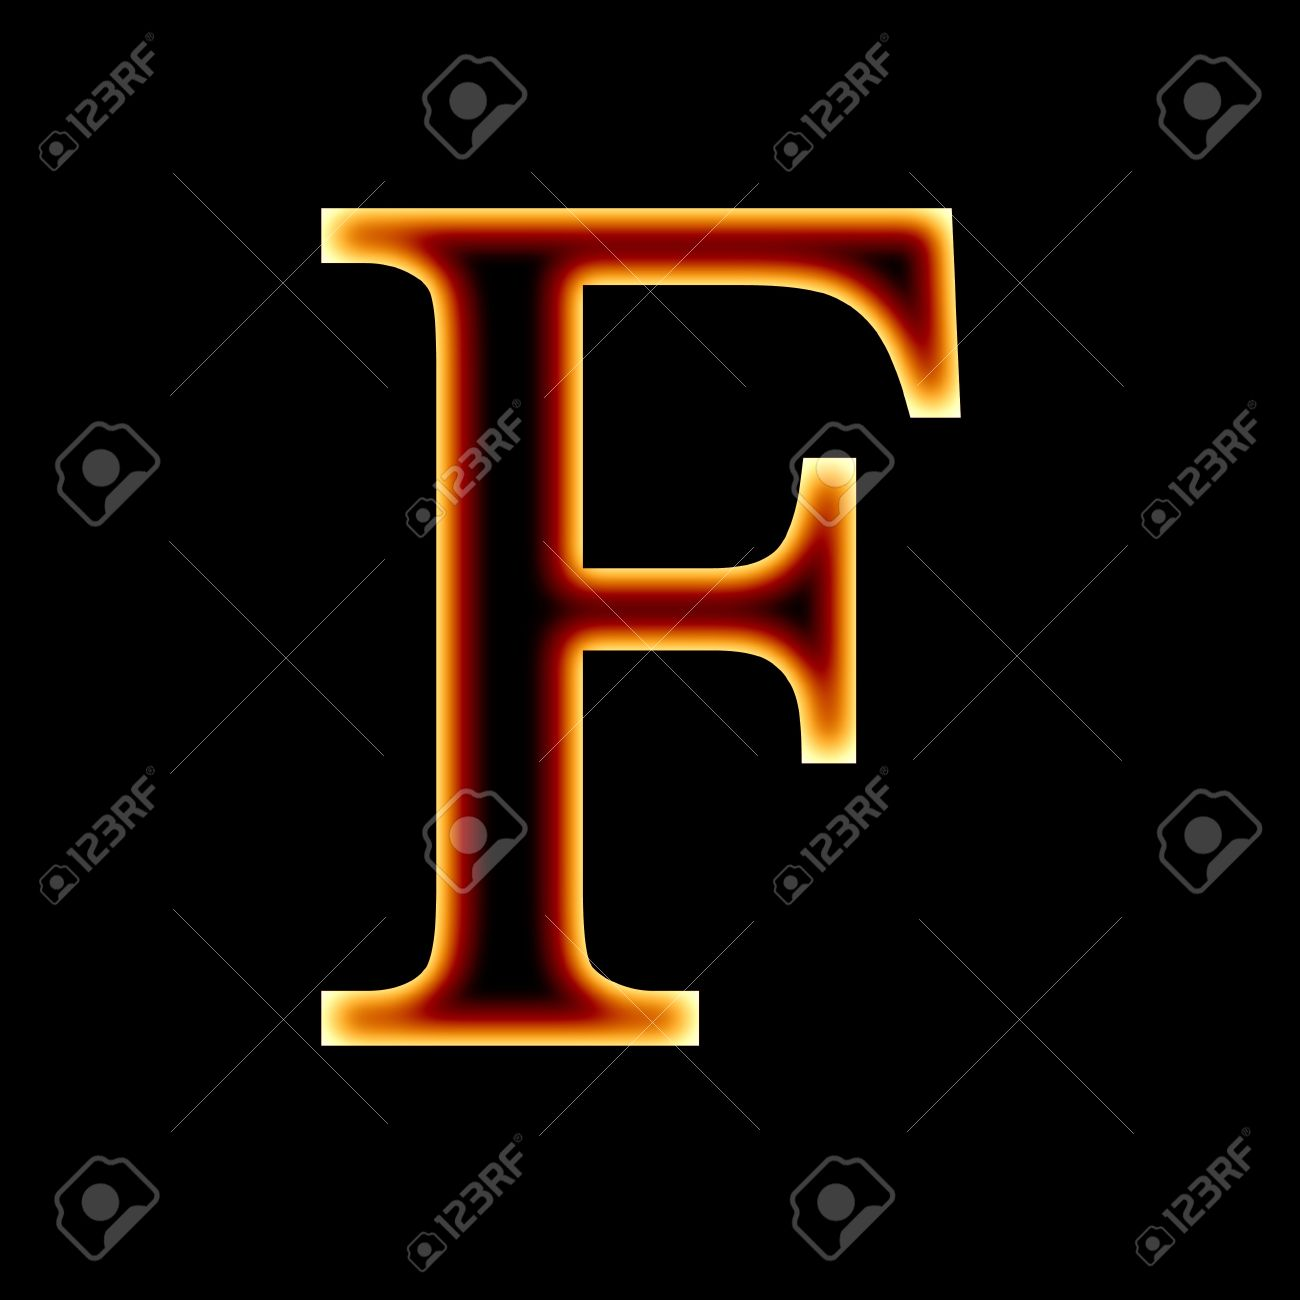 Fire Font Letter F On A Dark Background Stock Photo